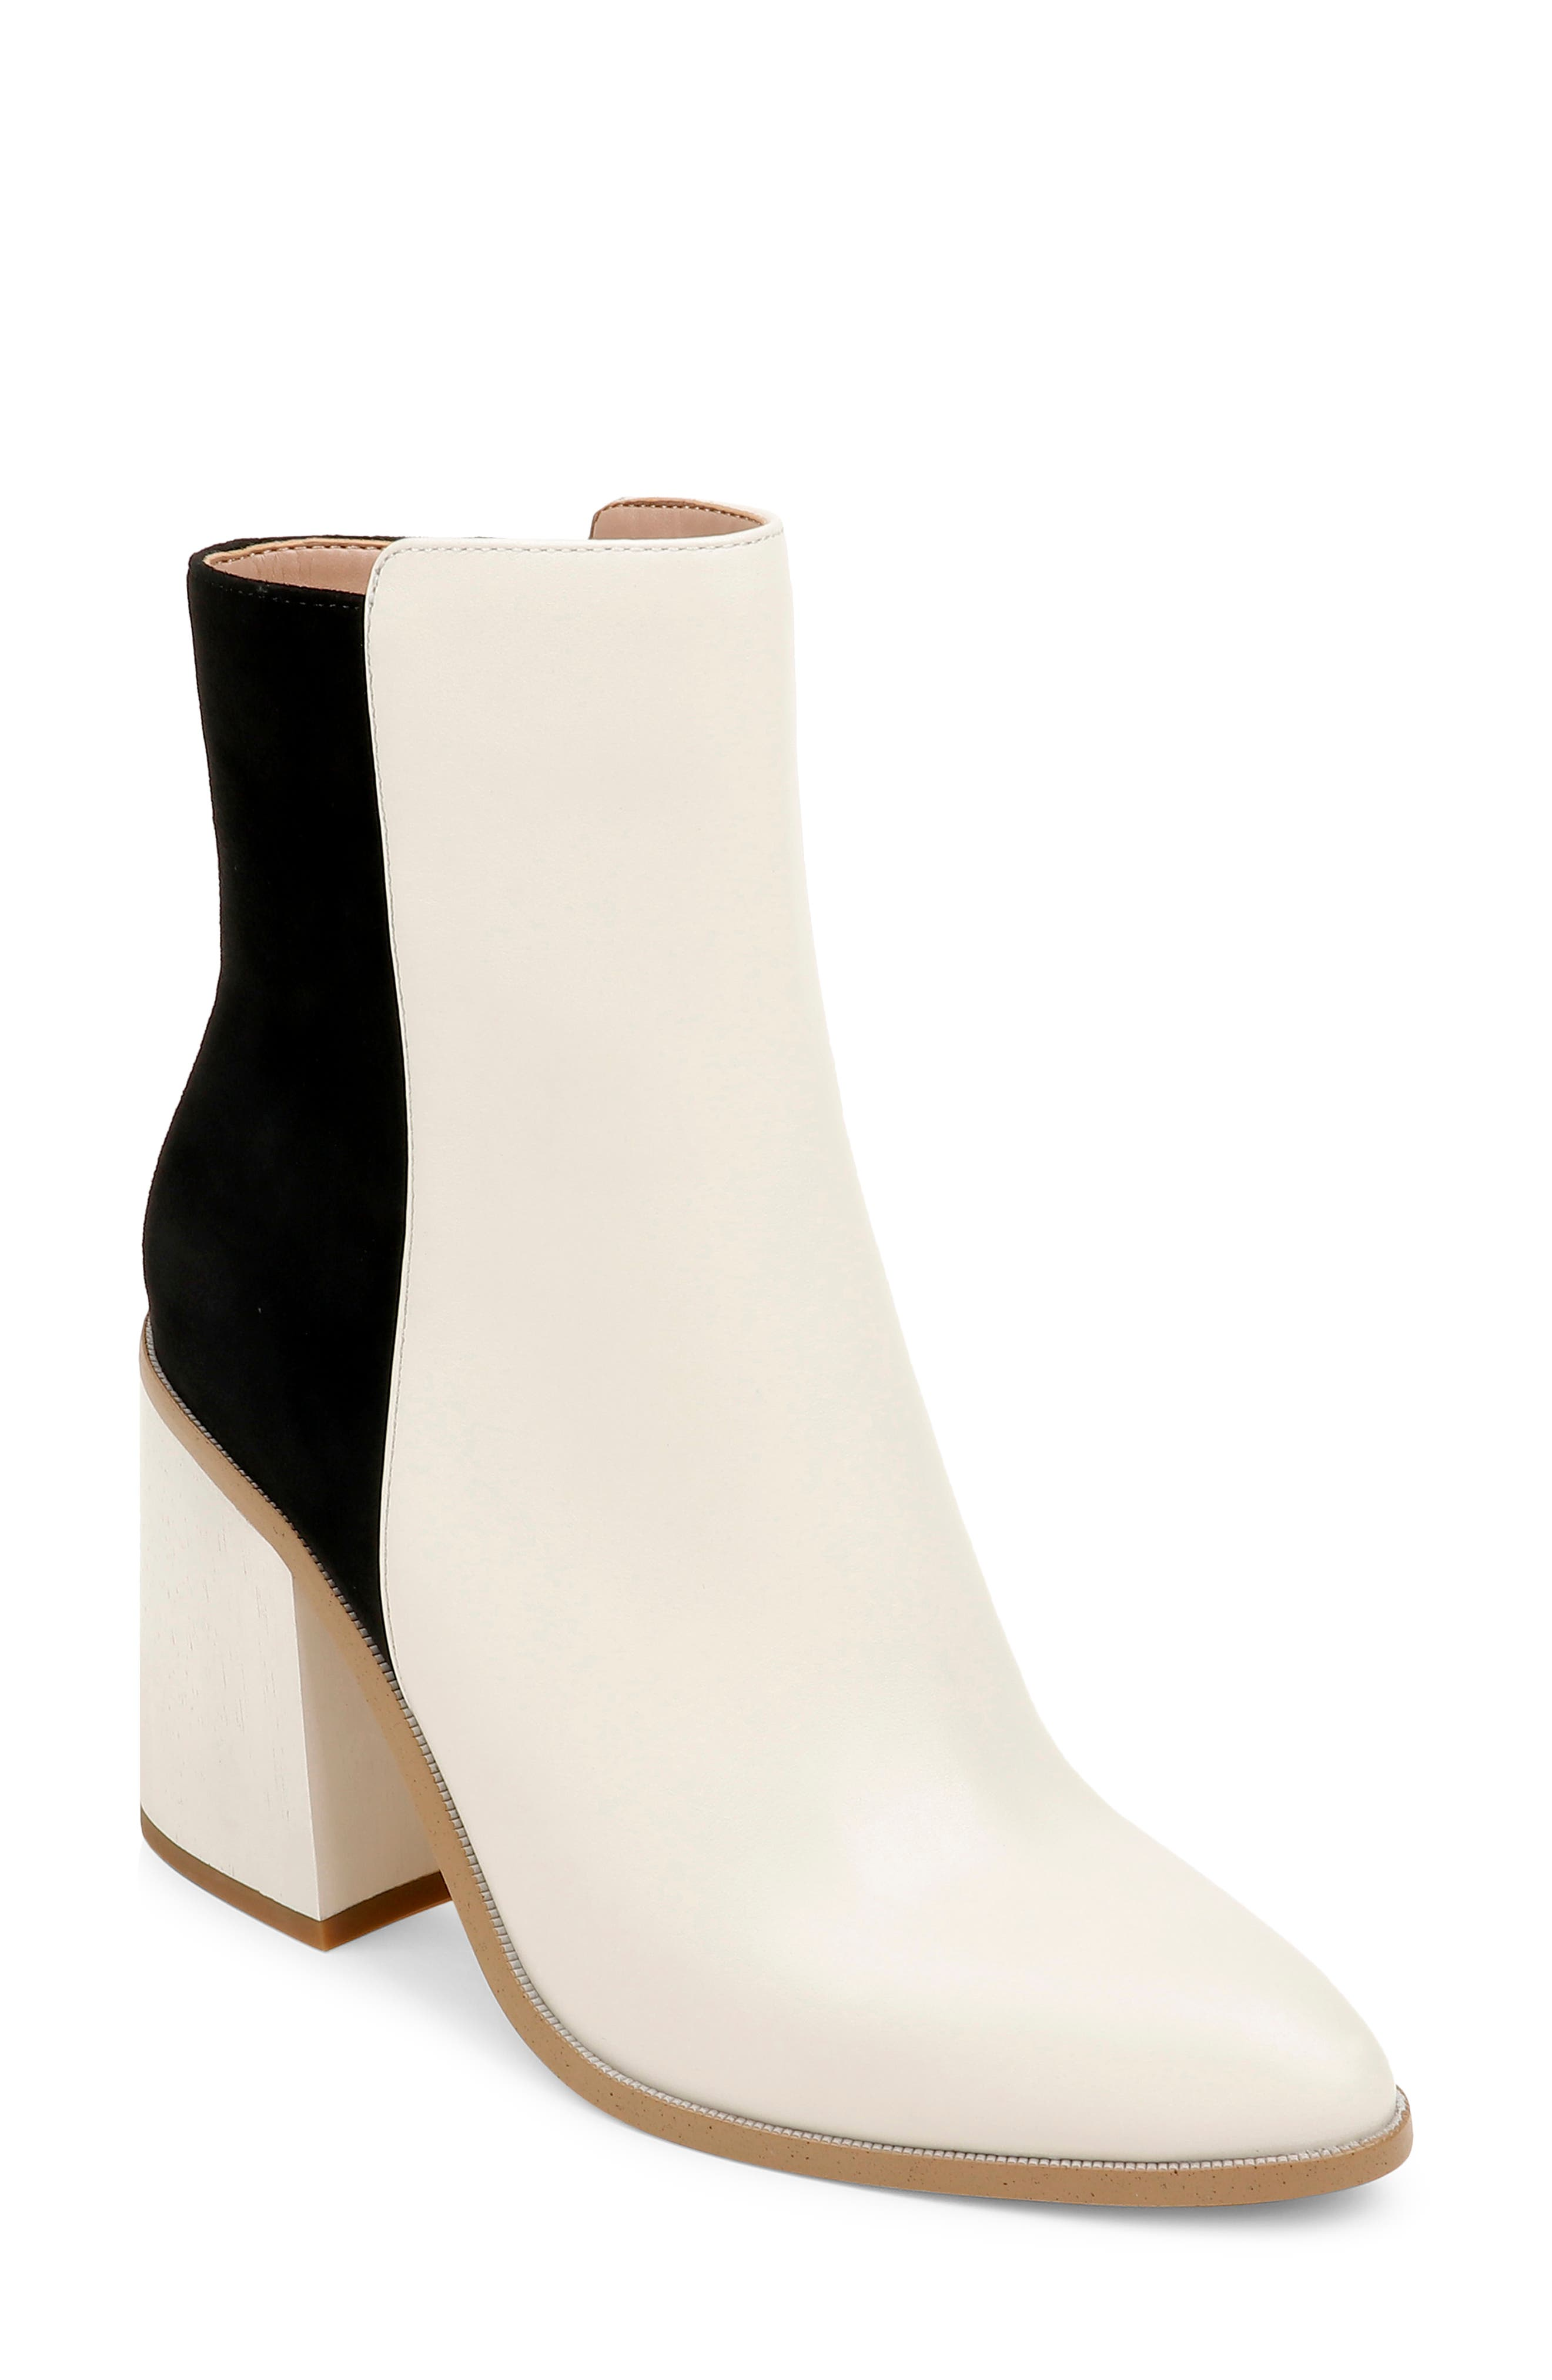 Women's Offwhite Boots   Nordstrom